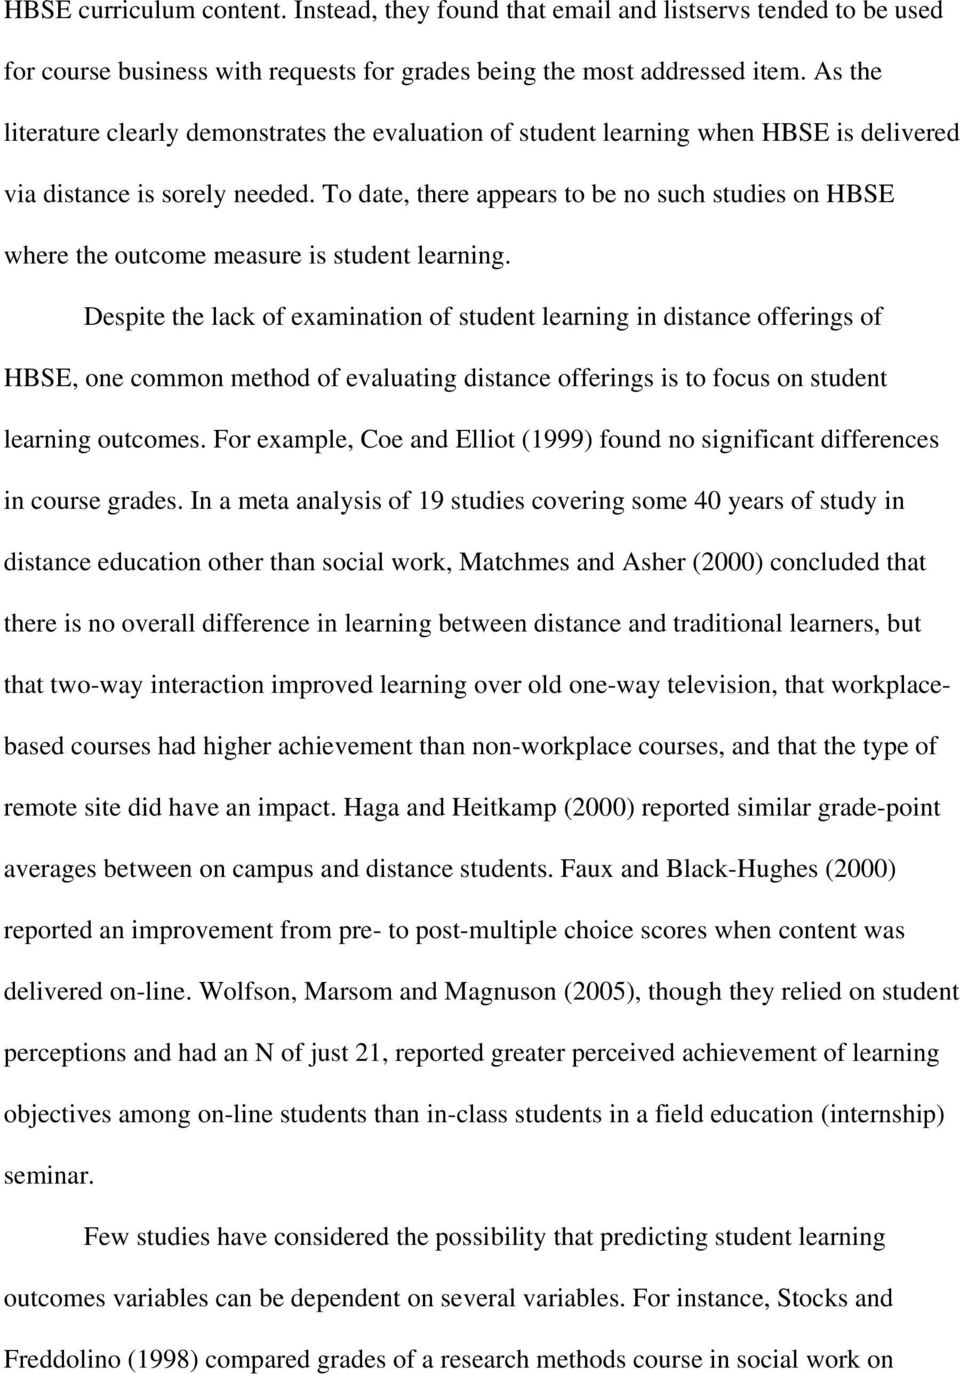 To date, there appears to be no such studies on HBSE where the outcome measure is student learning.